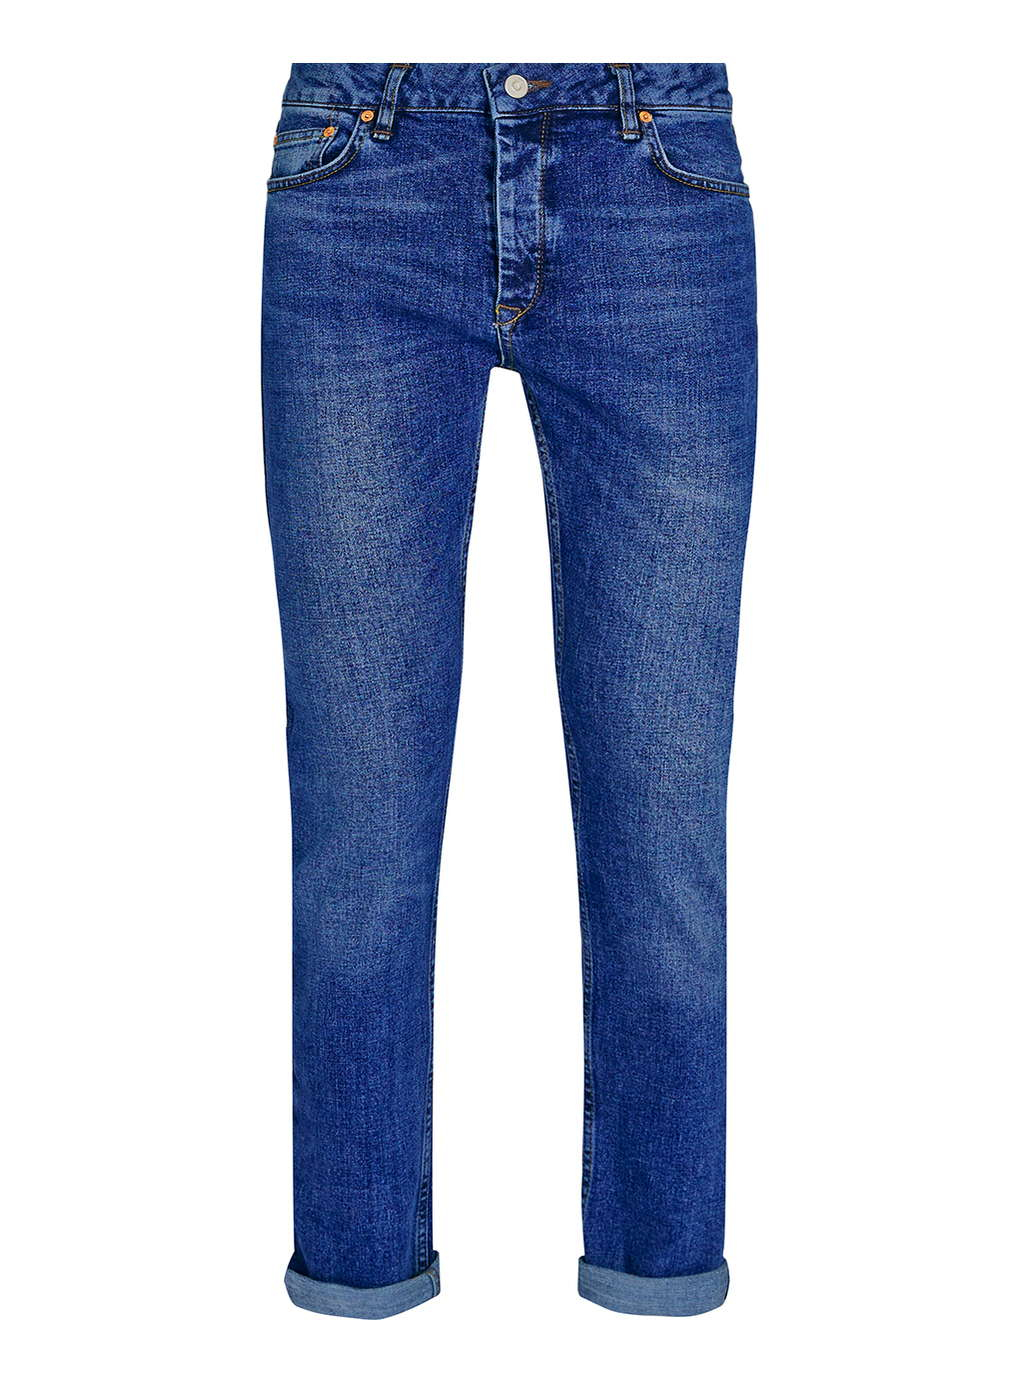 Selvedge is rigid, strong % cotton denim, bound with a